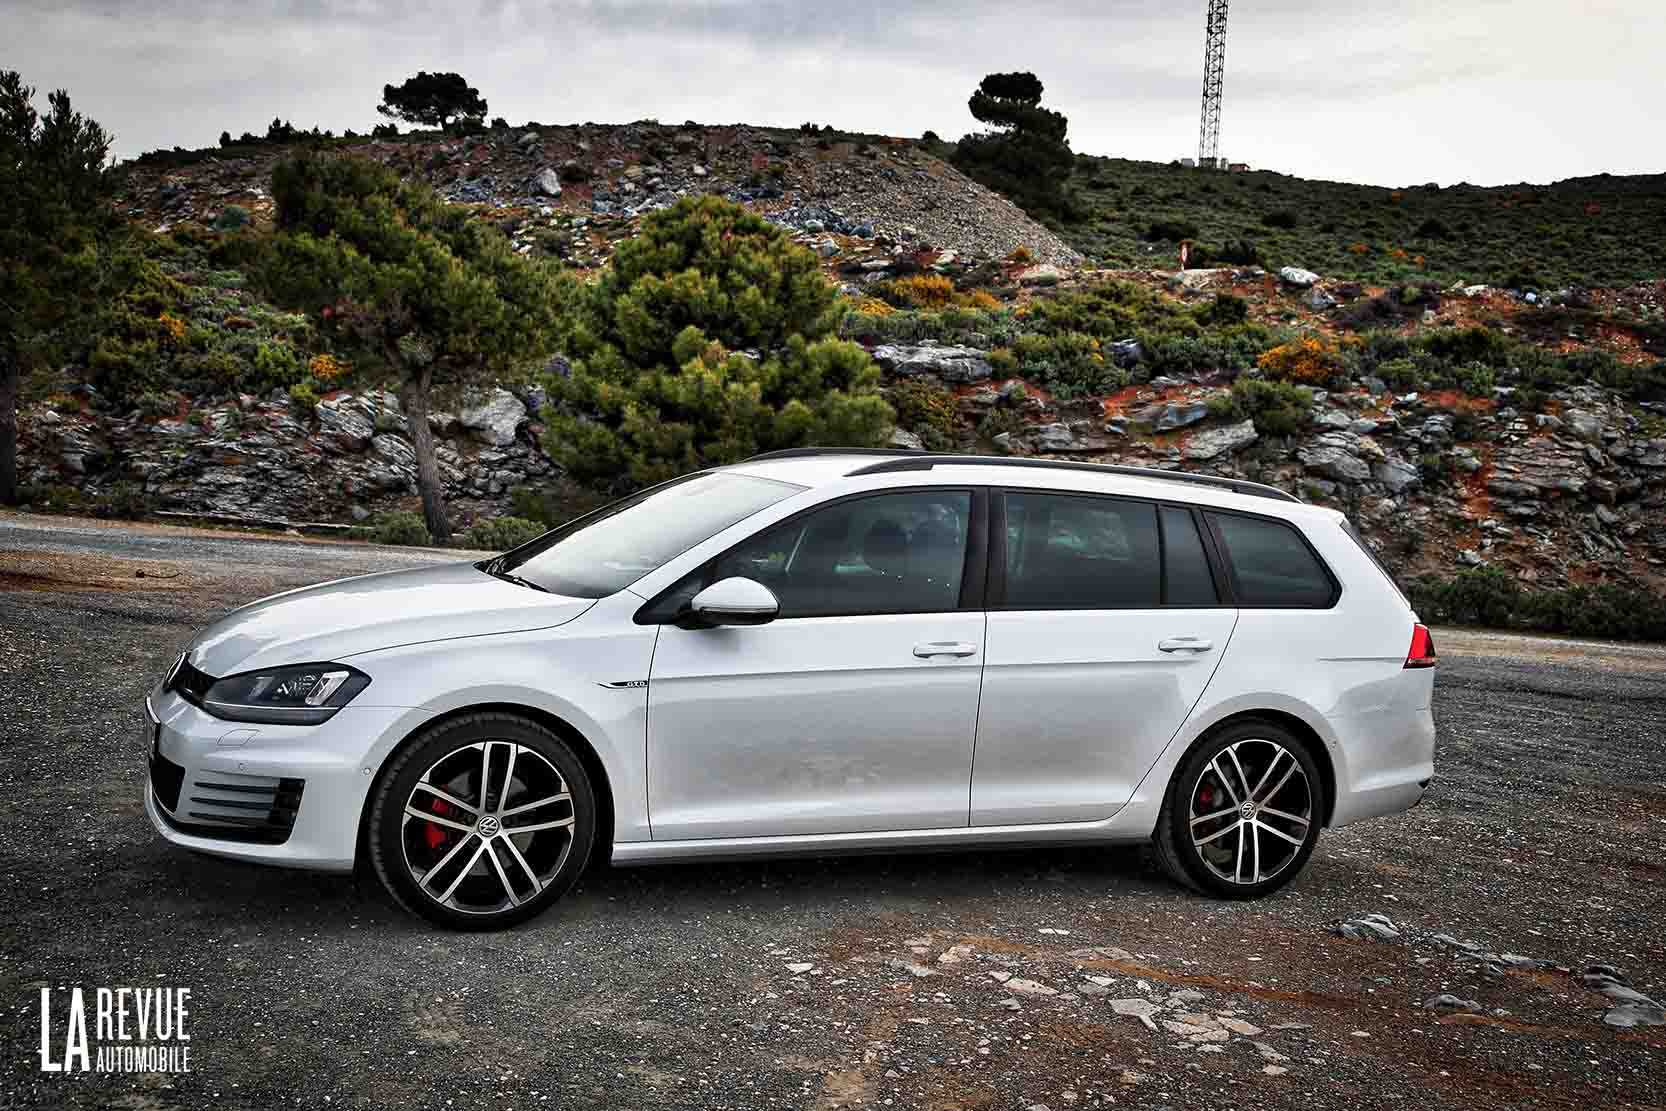 2019 Volkswagen Golf Alltrack | Car Photos Catalog 2018